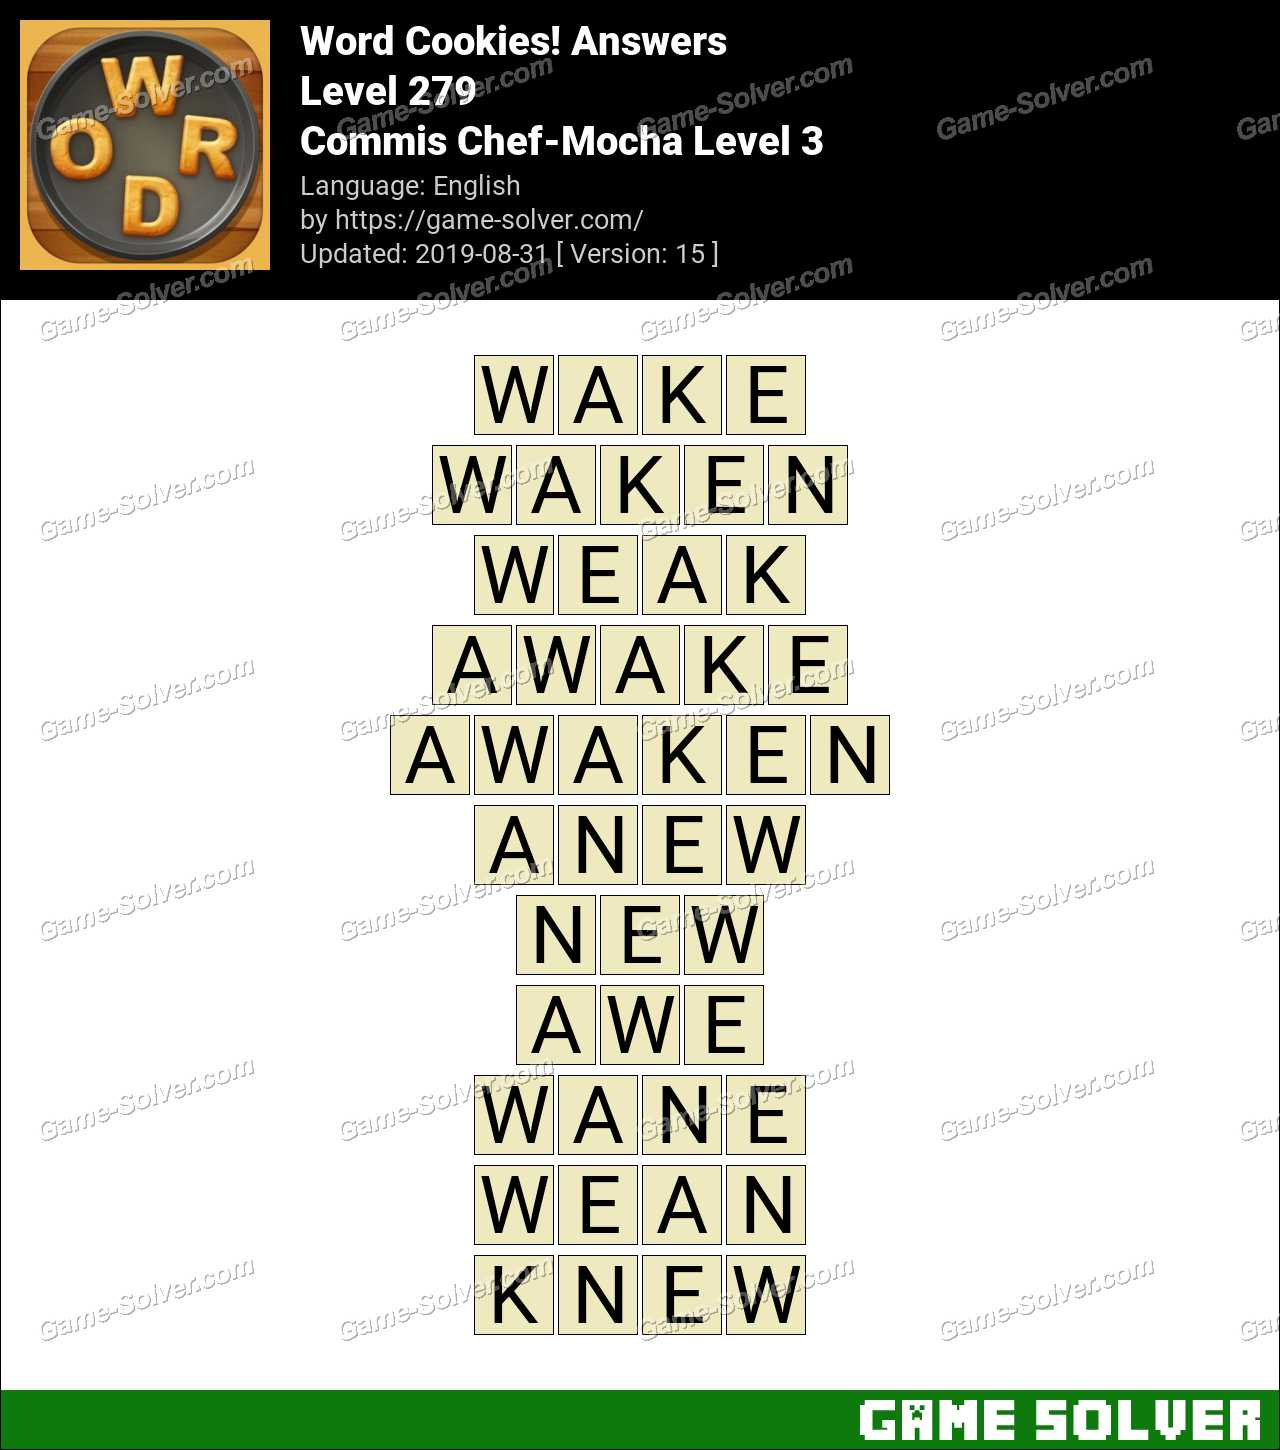 Word Cookies Commis Chef-Mocha Level 3 Answers